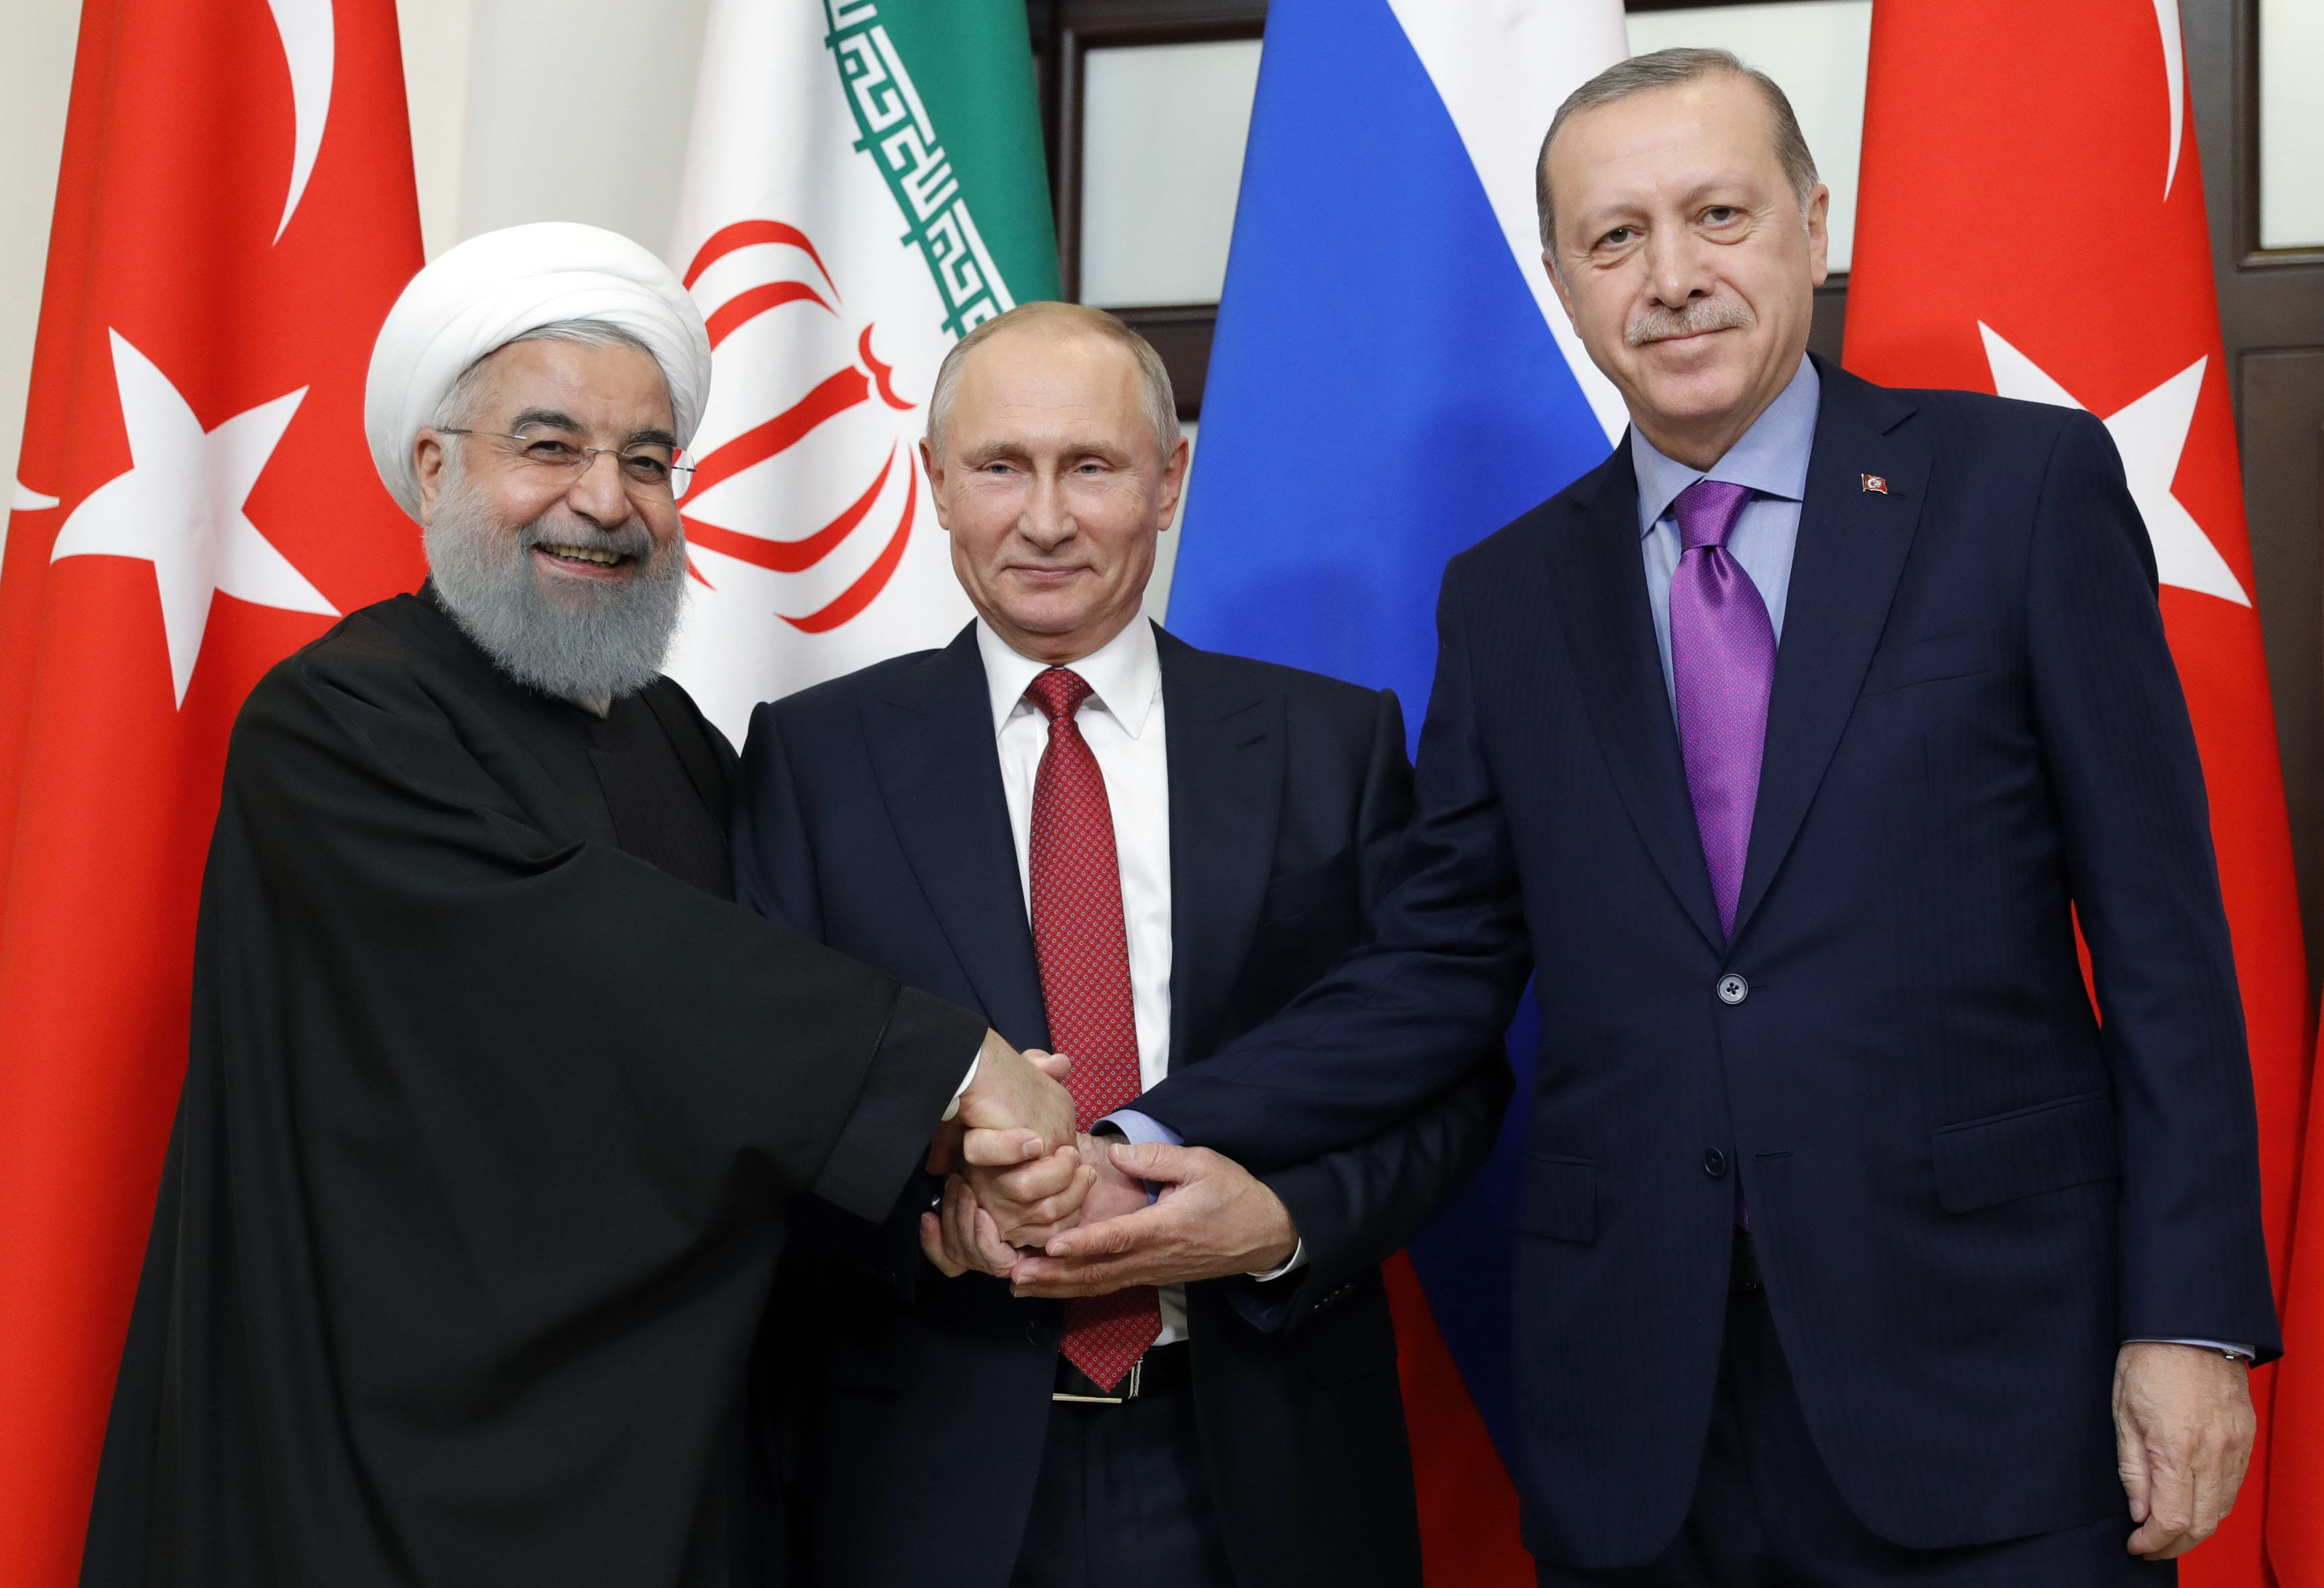 TOPSHOT - Russian President Vladimir Putin (C), Turkish President Recep Tayyip Erdogan (R) and Iranian President Hassan Rouhani pose during a trilateral meeting on Syria in Sochi on November 22, 2017. / AFP PHOTO / SPUTNIK / Mikhail METZEL (Photo credit should read MIKHAIL METZEL/AFP/Getty Images)